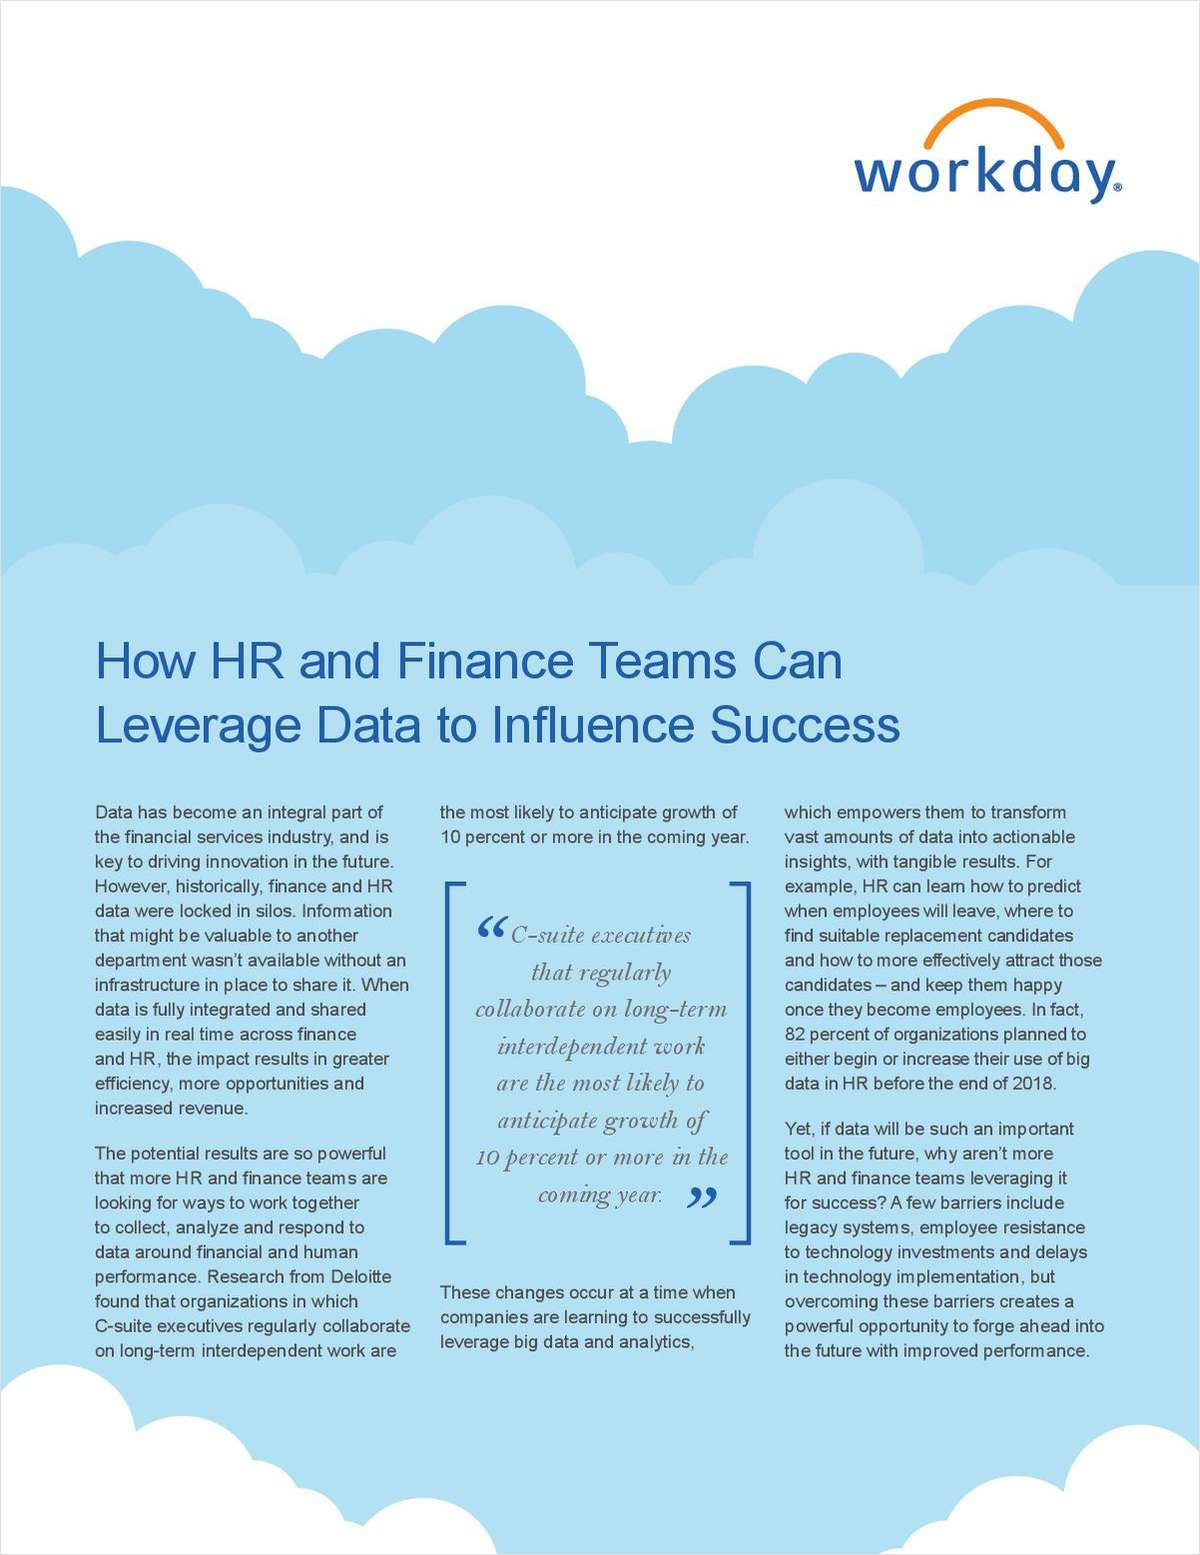 How Credit Unions Can Leverage HR and Finance Data for Mutual Success